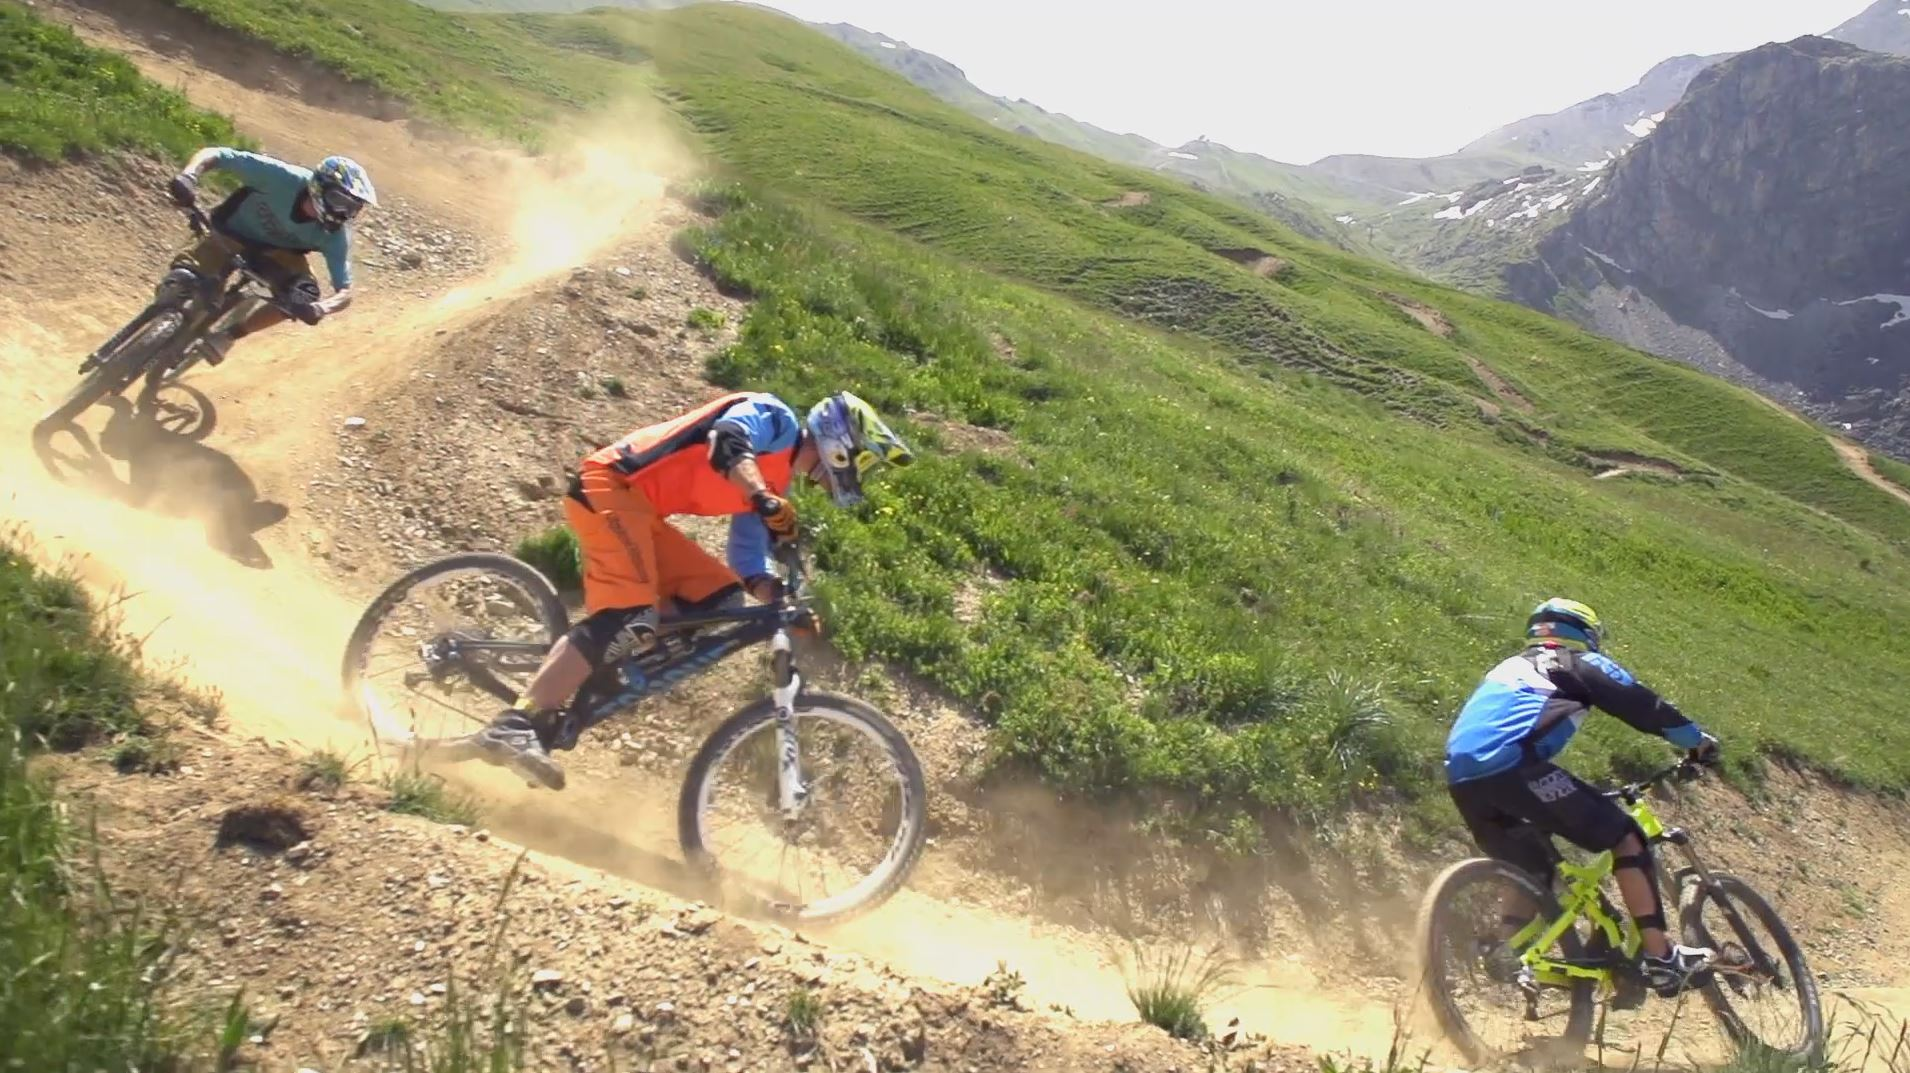 TIGNES - BIKE PARK